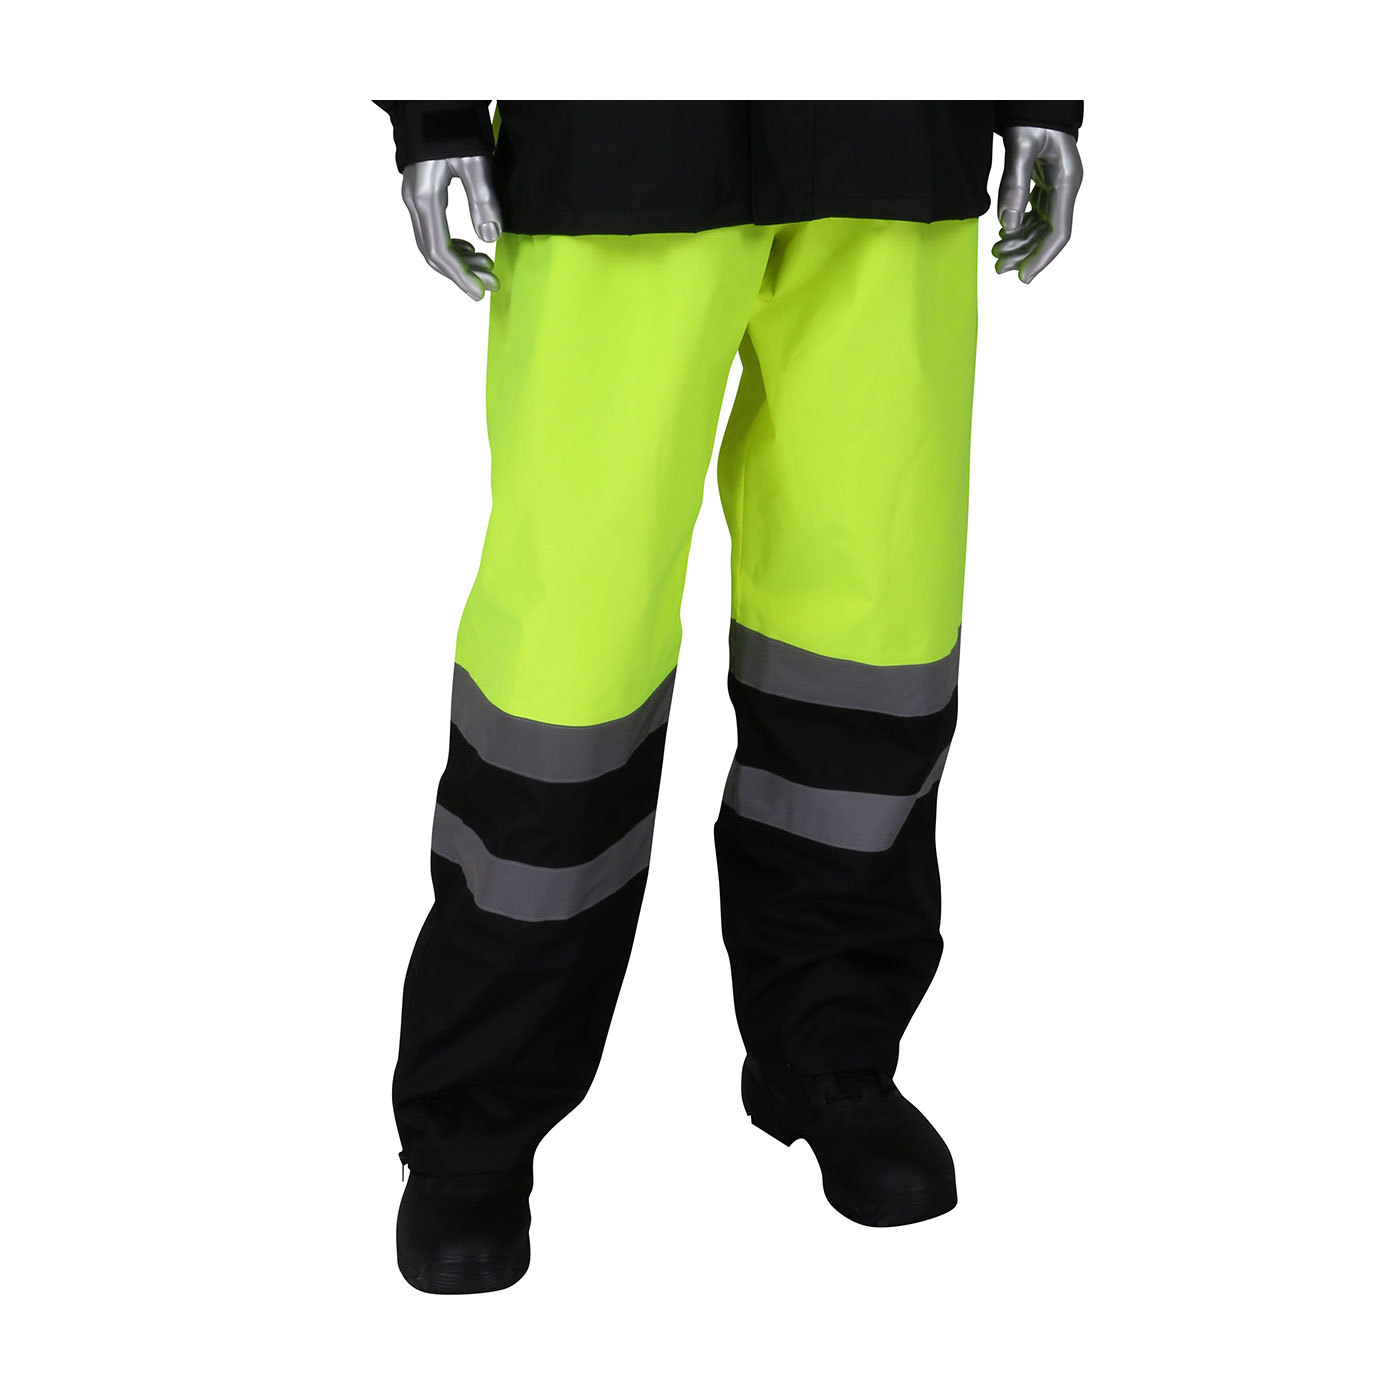 ANSI Class E Value All Purpose Waterproof Pants with Black Bottoms, Hi-Vis Yellow, L-XL